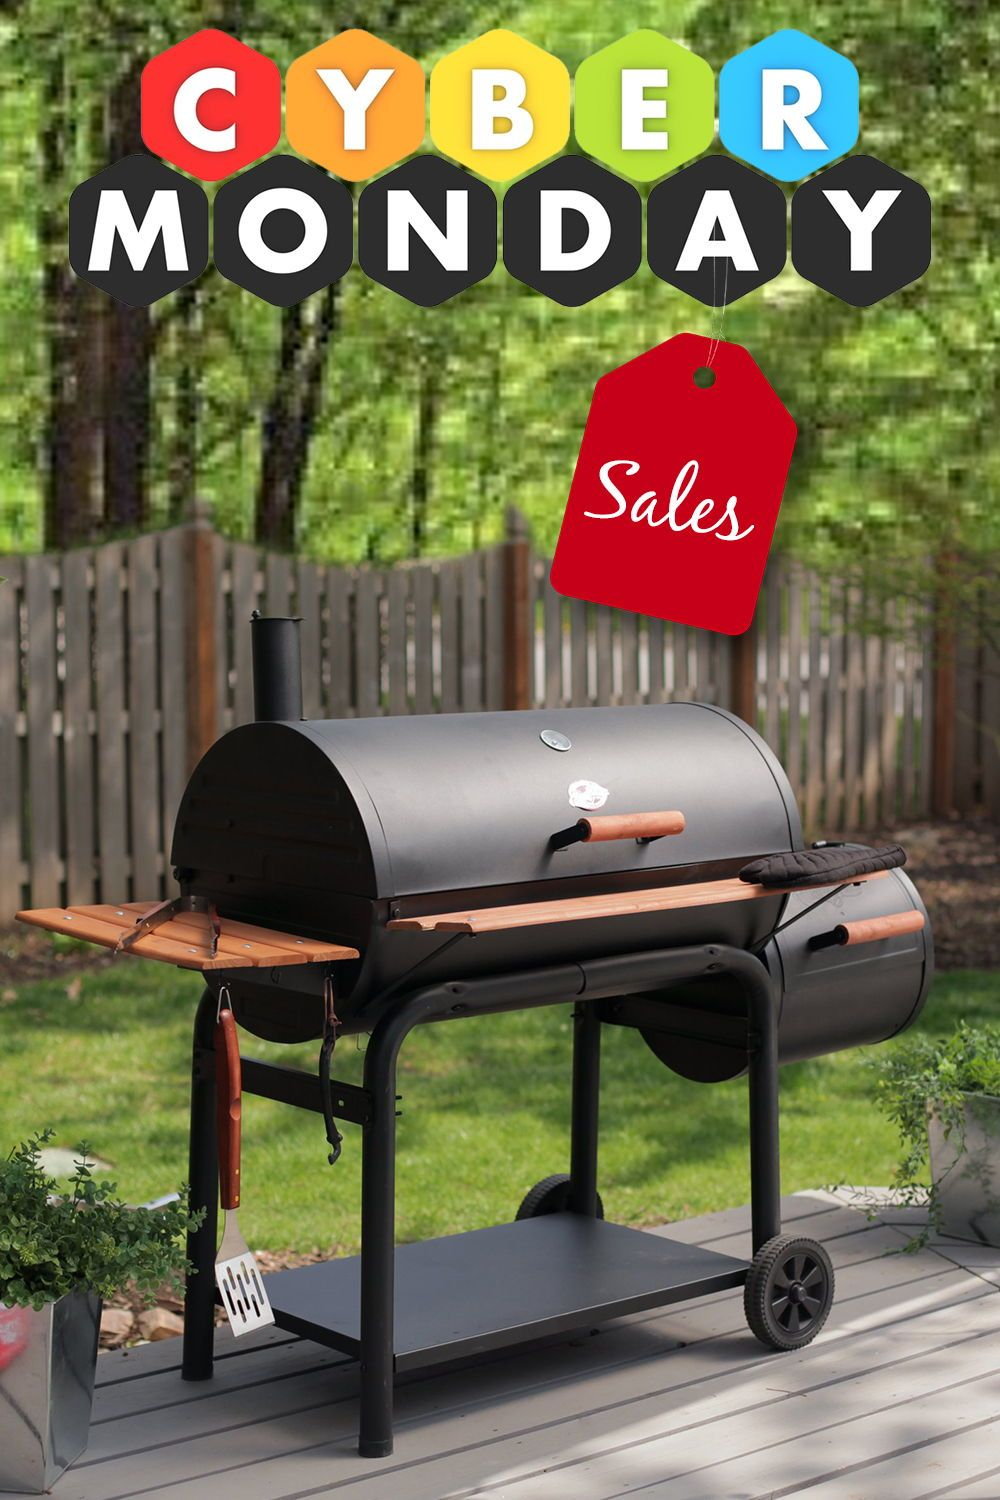 Smoker Grills With Discounts On Amazon Compare Before You Purchase Grills Forever Best Electric Smoker Best Smoker Grilling